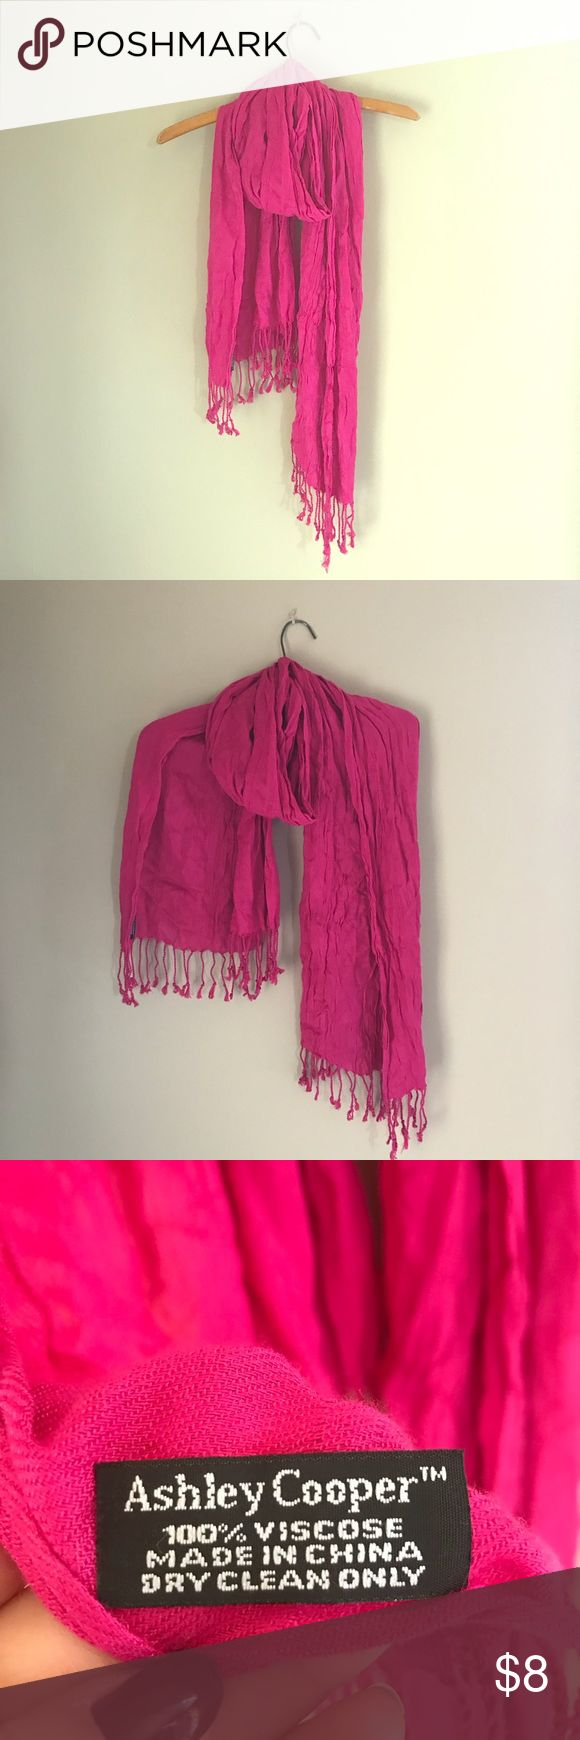 Pink Ashley Cooper scarf Bright pink Ashley Cooper scarf.  100% Viscose  *Dry clean only  Very minor pulls. Ashley Cooper Accessories Scarves & Wraps